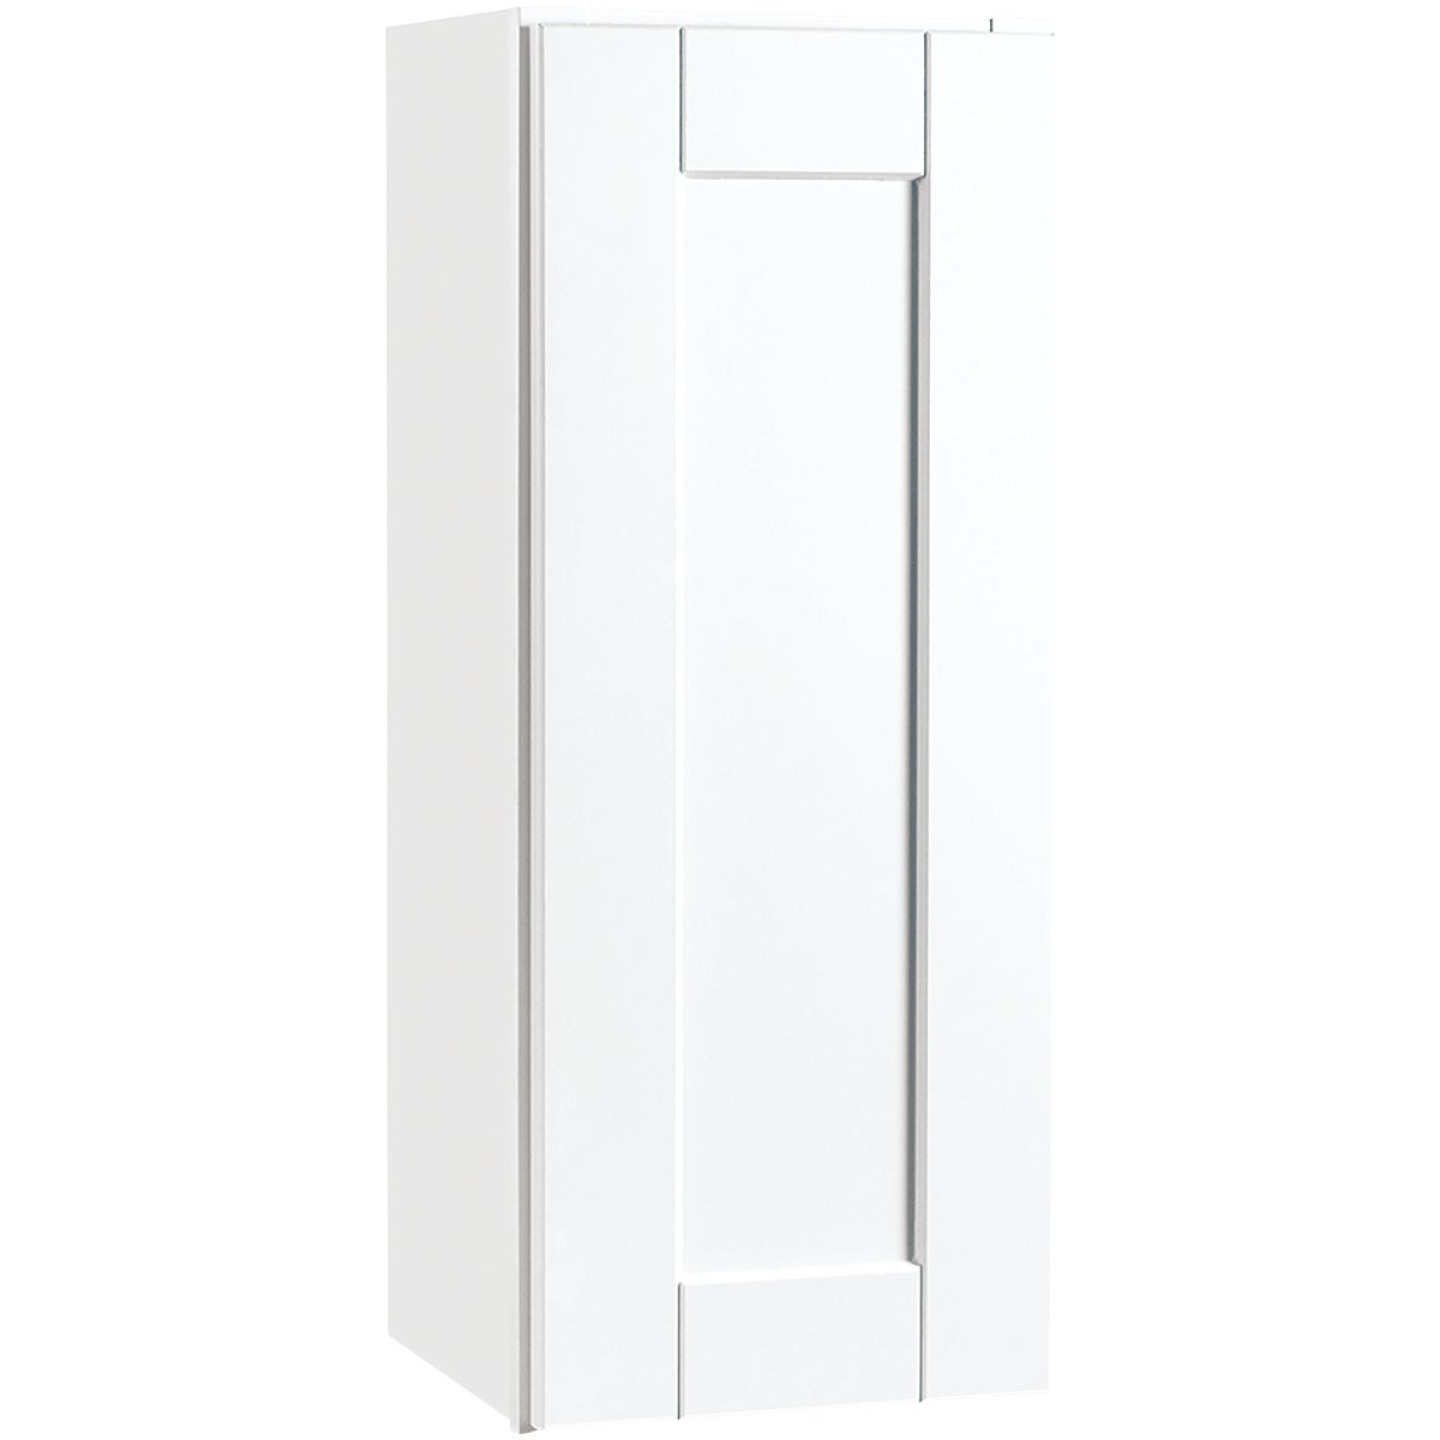 Continental Cabinets Andover Shaker 12 In. W x 30 In. H x 12 In. D White Thermofoil Wall Kitchen Cabinet Image 1